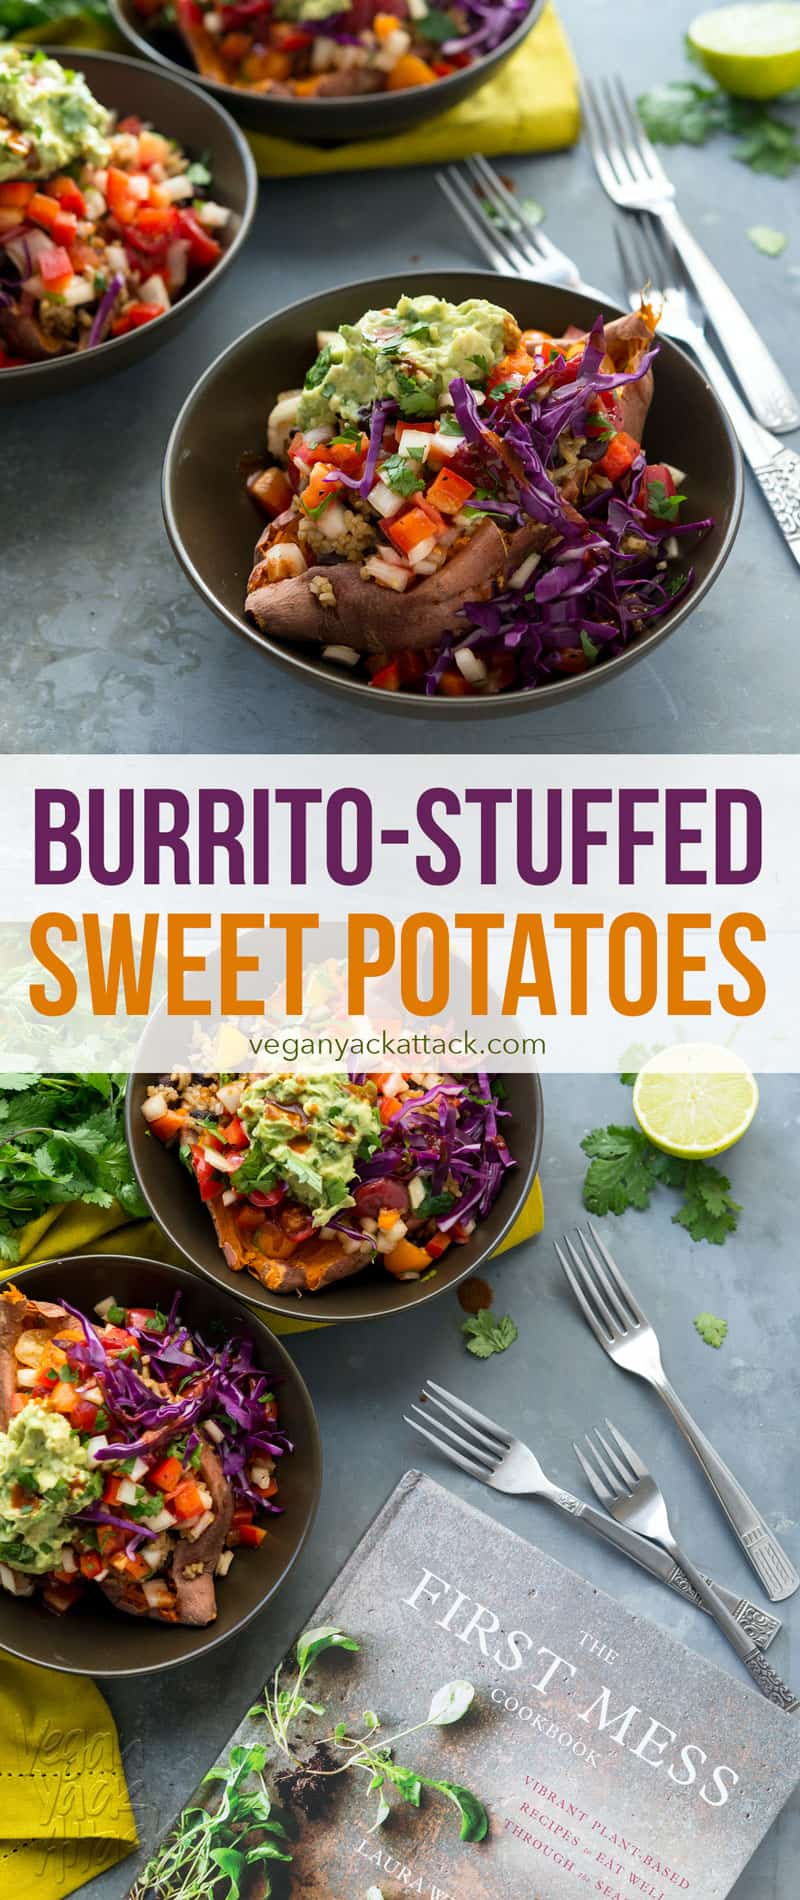 Burrito-Stuffed Sweet Potatoes - Black beans with rice, Rustic salsa and a simple guacamole stuffed inside roasted sweet potatoes! From The First Mess Cookbook #glutenfree #soyfree #giveaway